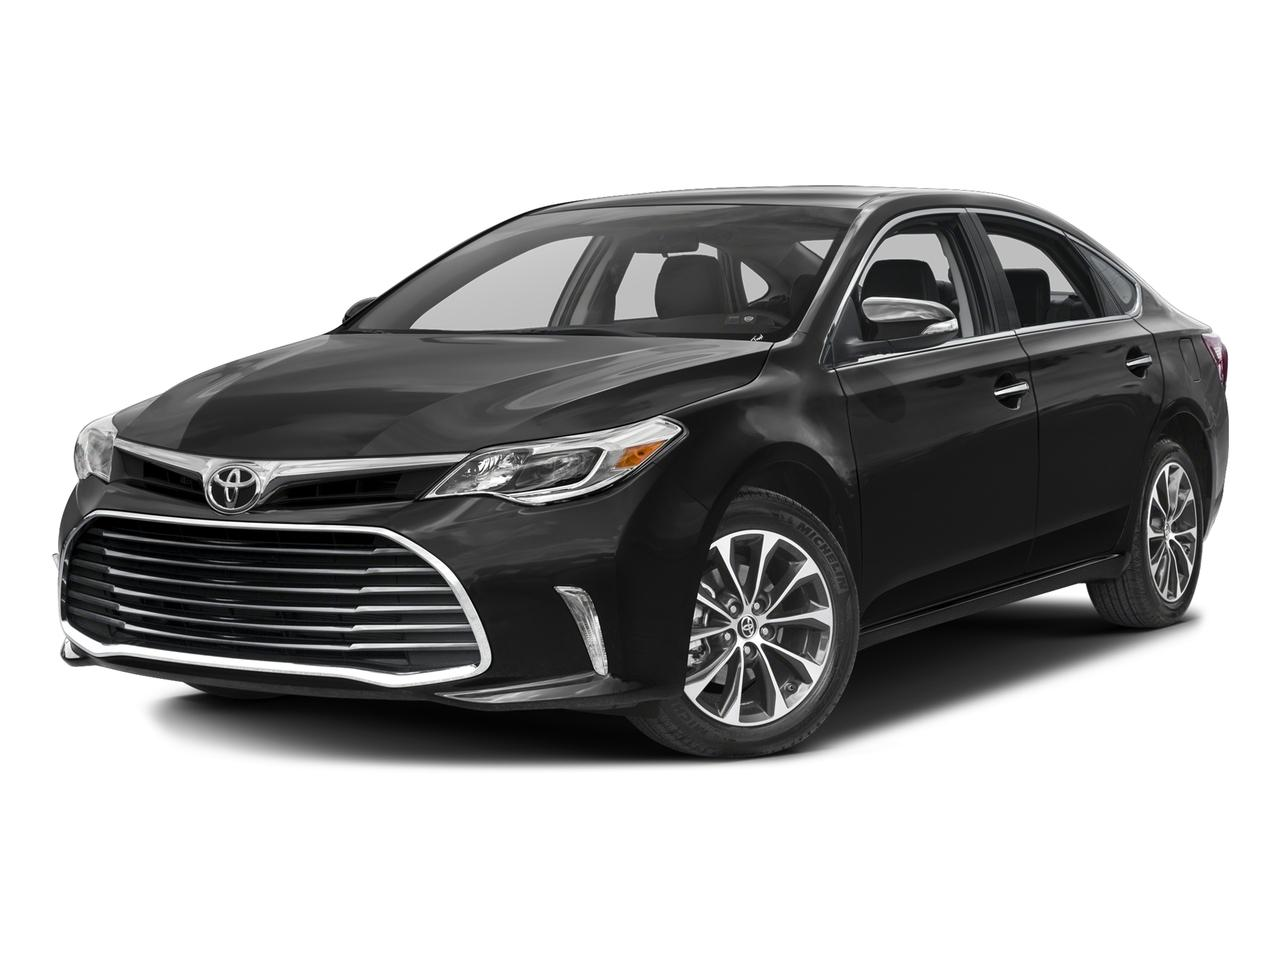 2016 Toyota Avalon Vehicle Photo in Rockville, MD 20852